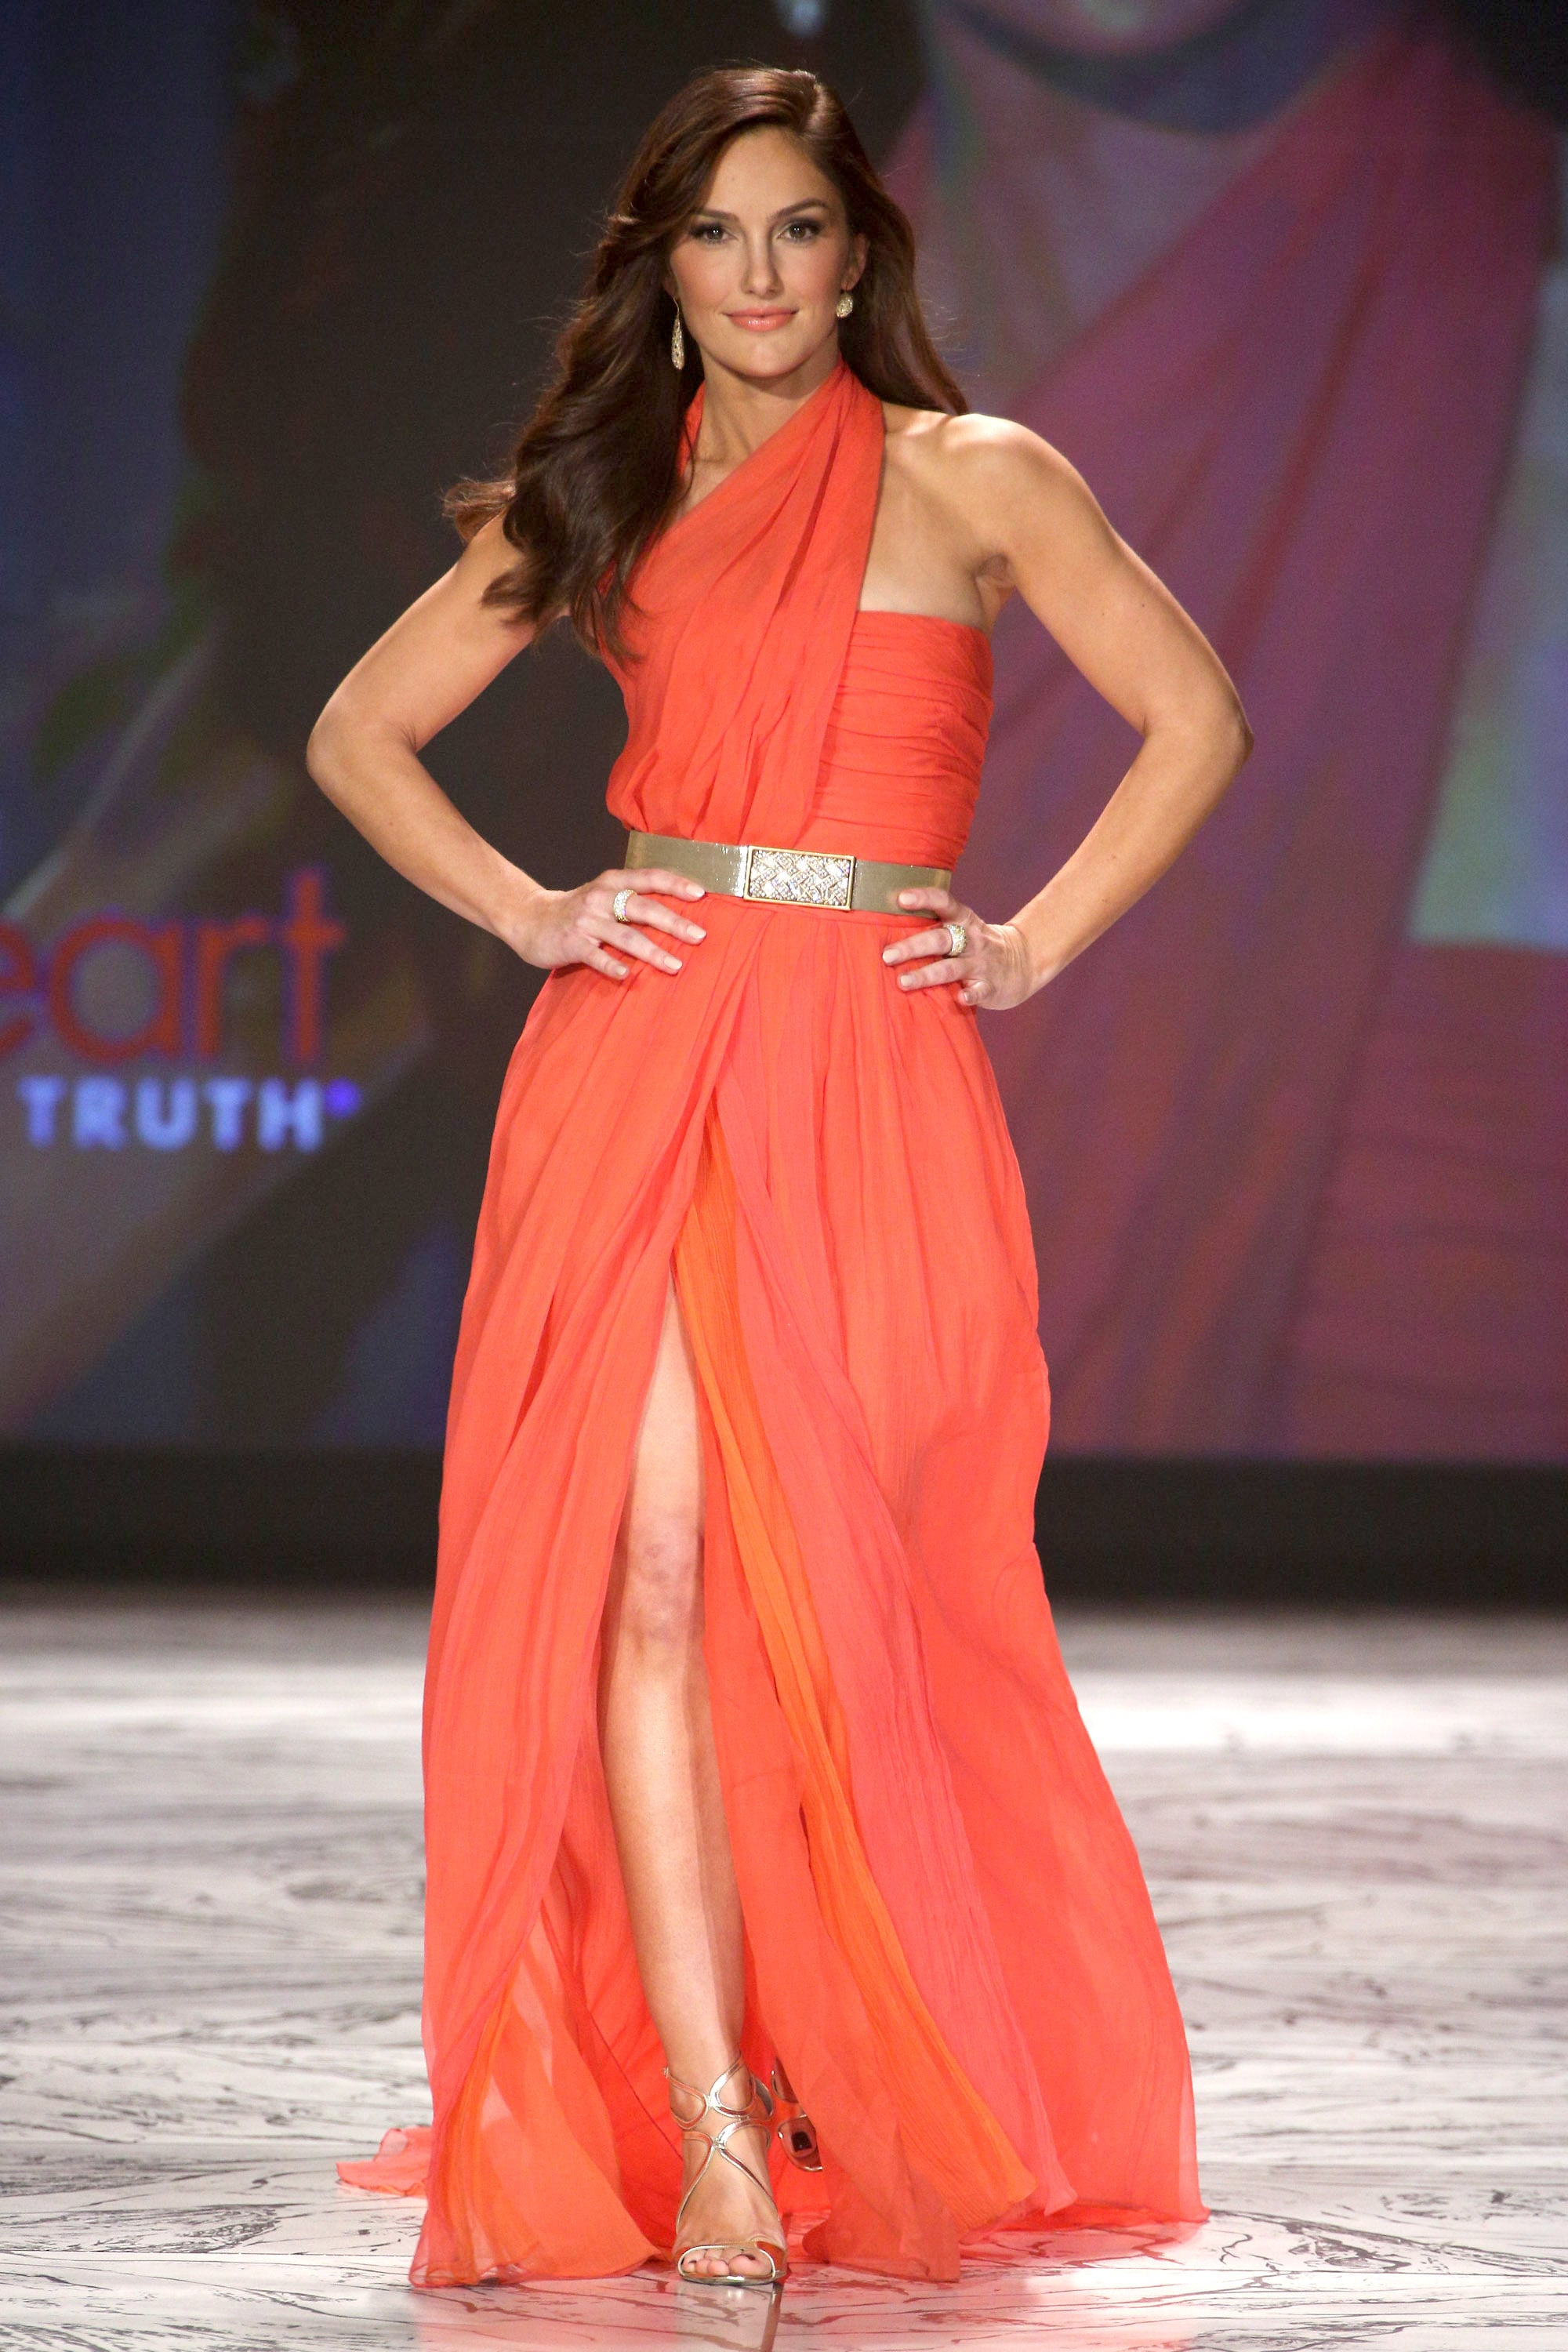 Minka Kelly walked the runway in Oscar de la Renta at The Heart Truth's Red Dress Collection fashion show on Wednesday.